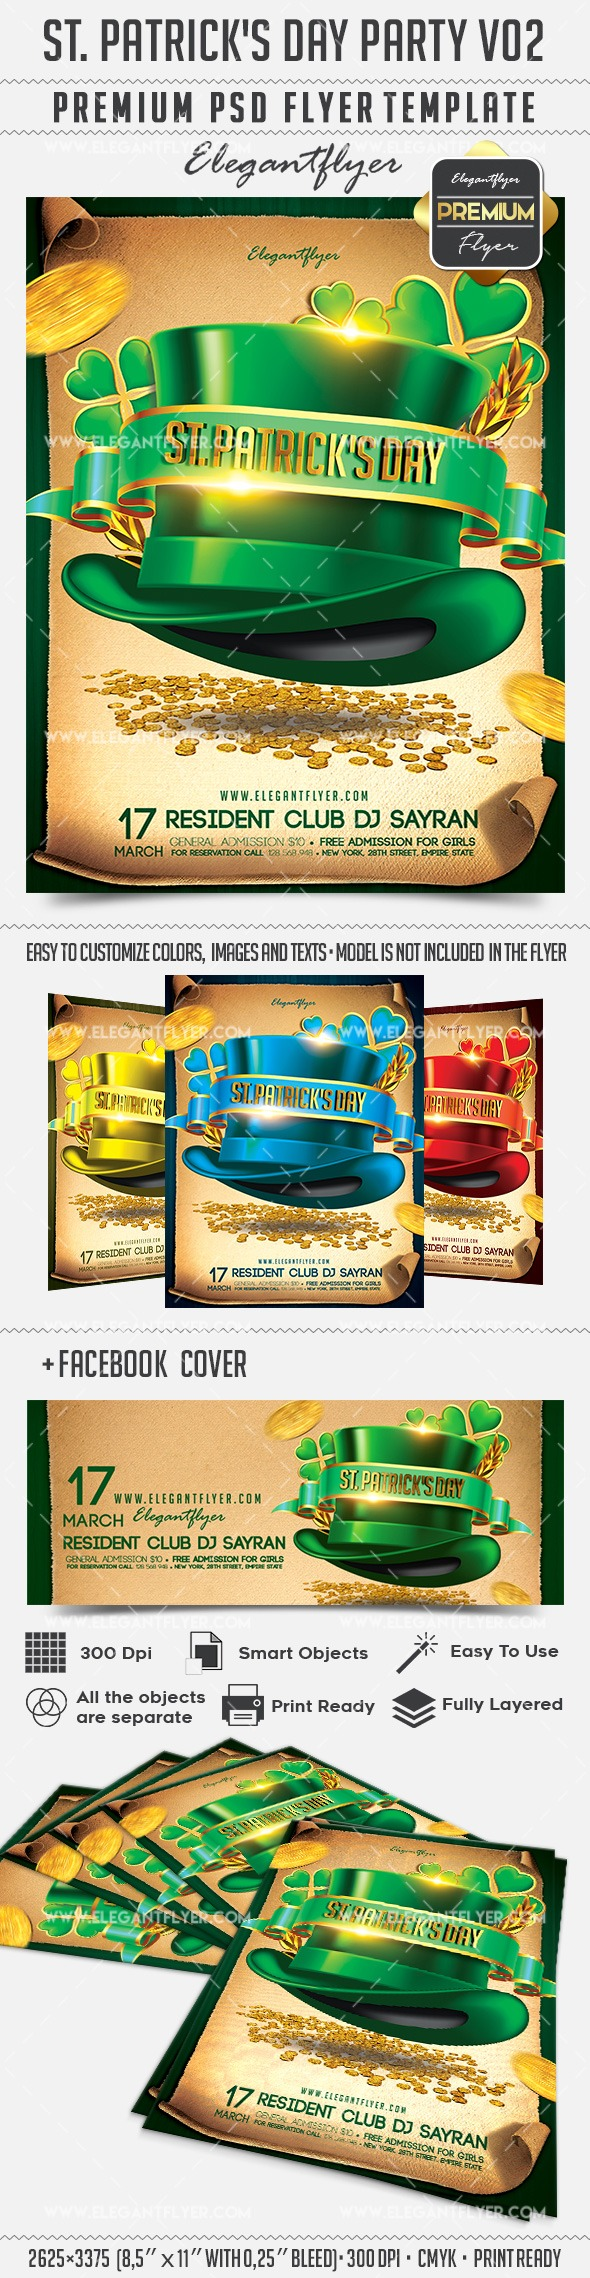 st  patrick u2019s day party v02  u2013 flyer psd template  u2013 by